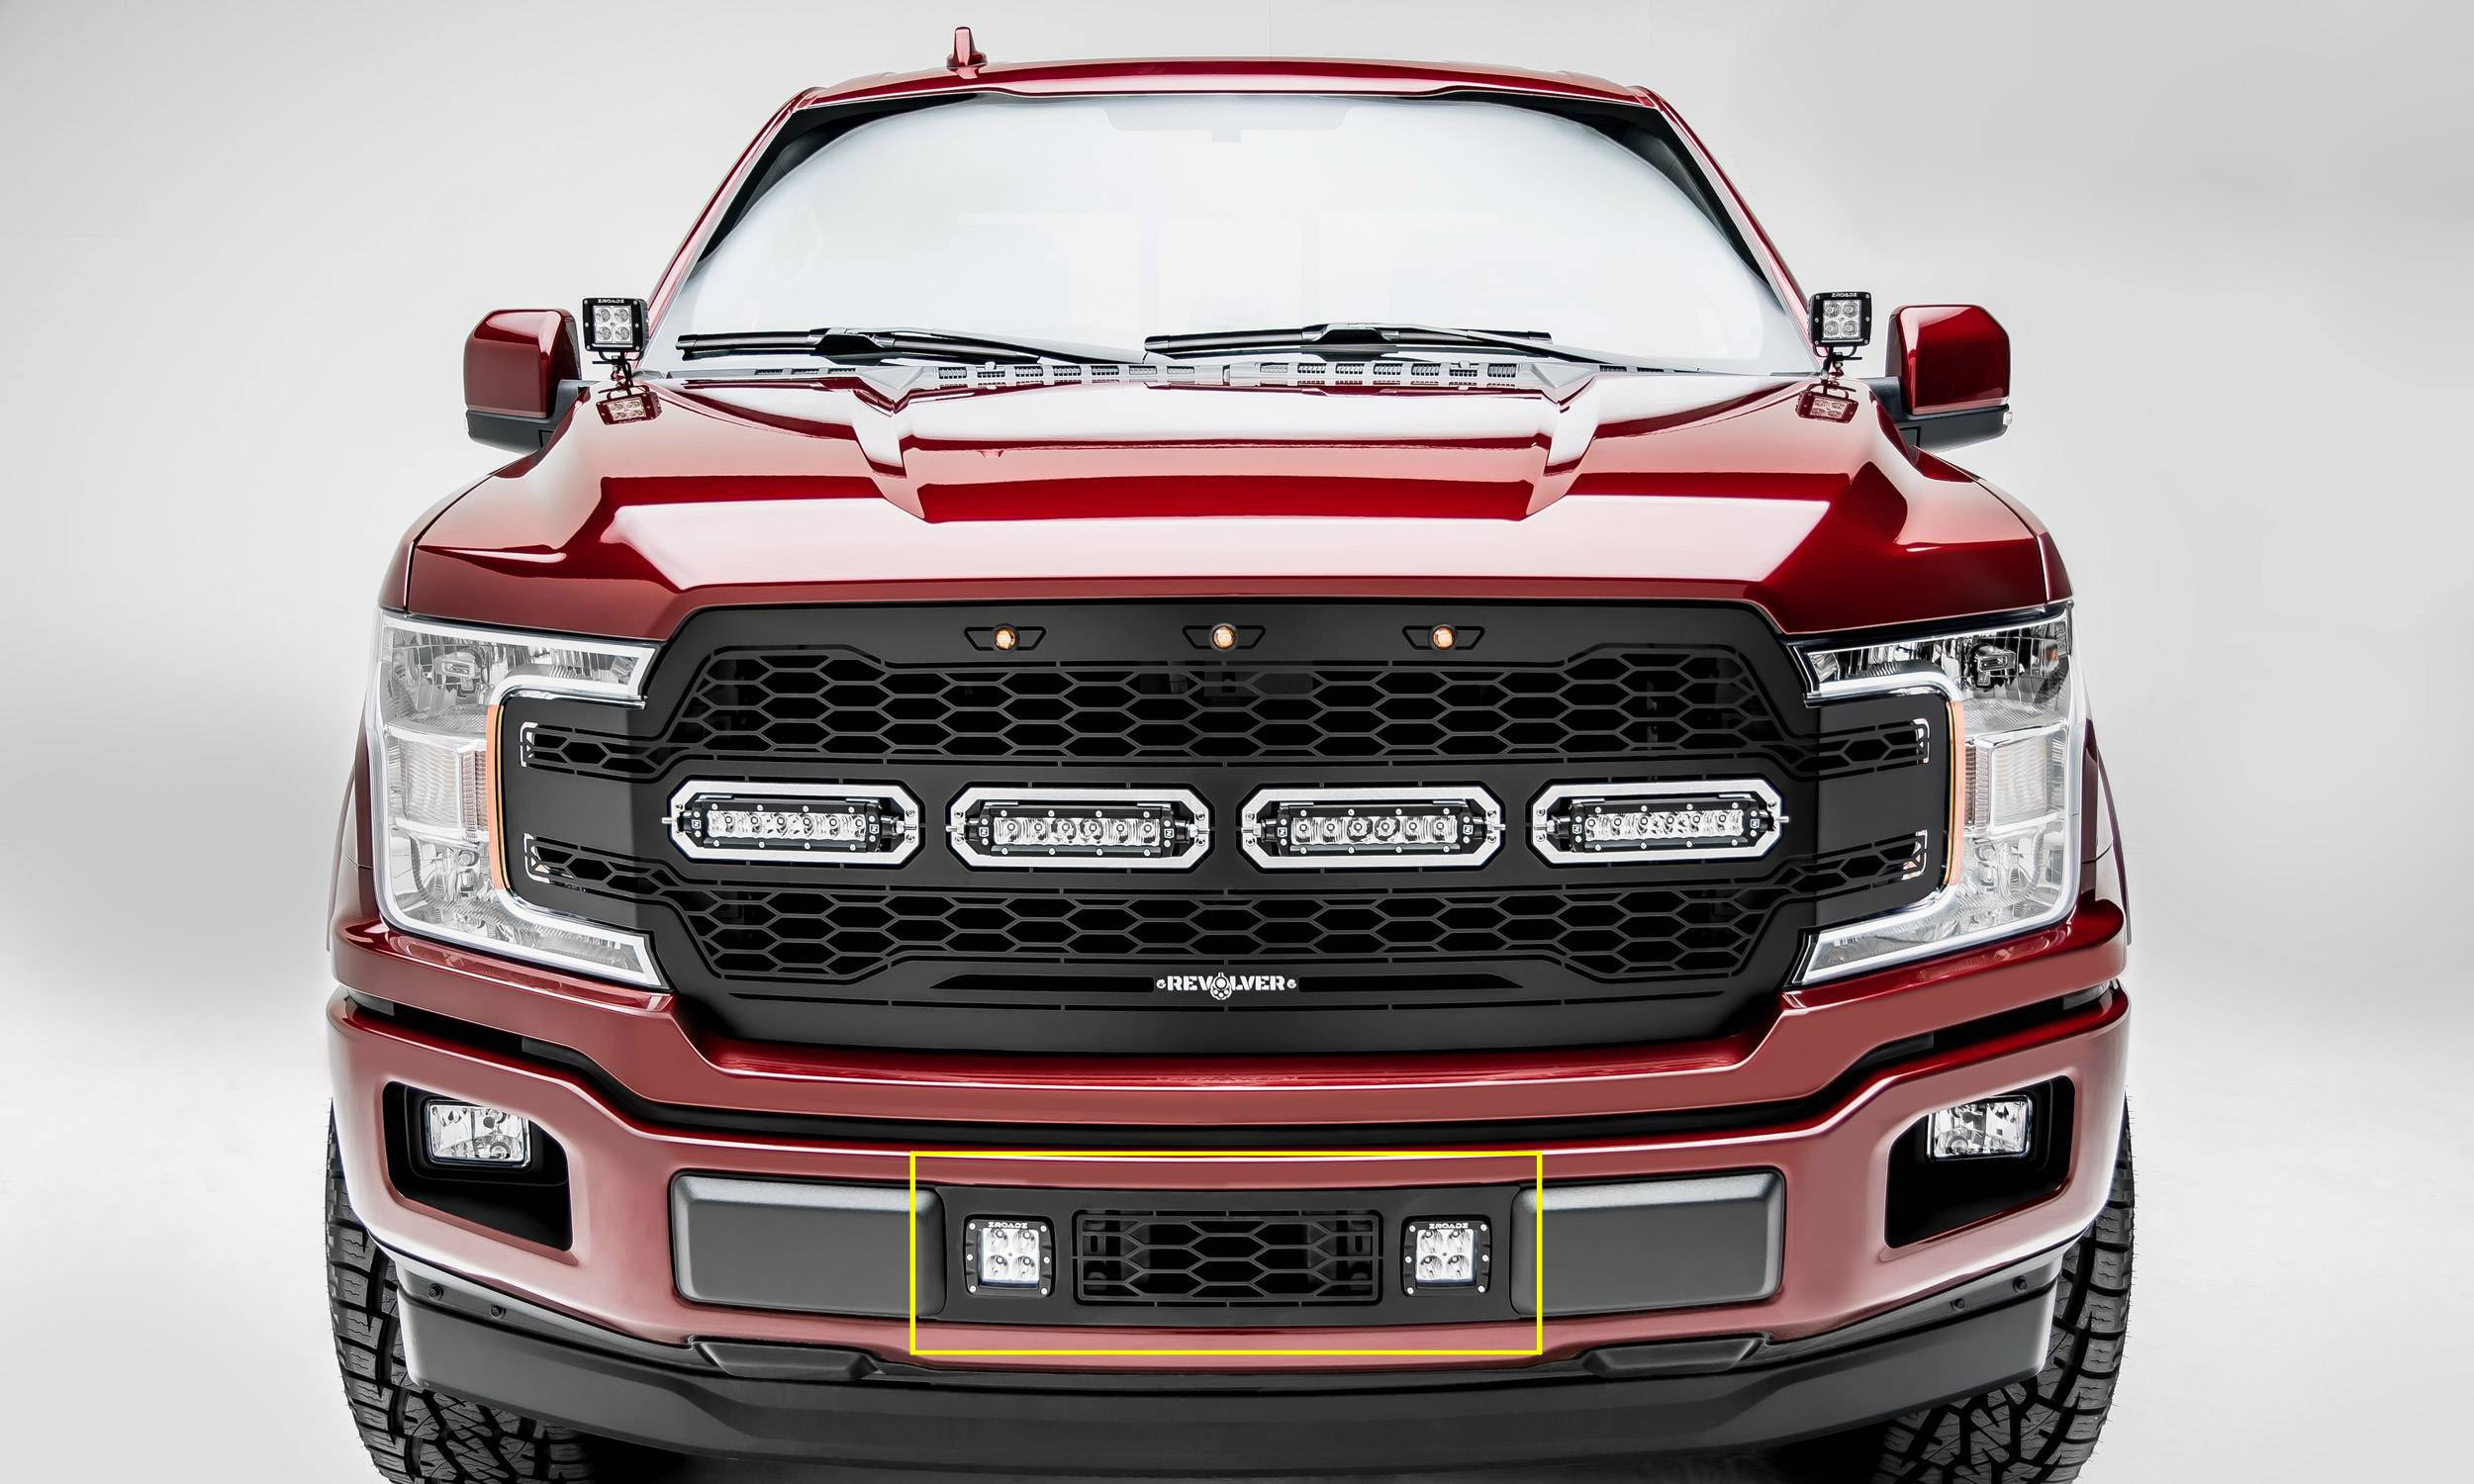 T-REX GRILLES - 2018-2020 F-150 Limited, Lariat Revolver Bumper Grille, Black, 1 Pc, Overlay with (2) 3 Inch LED Cube Lights - PN #6525751